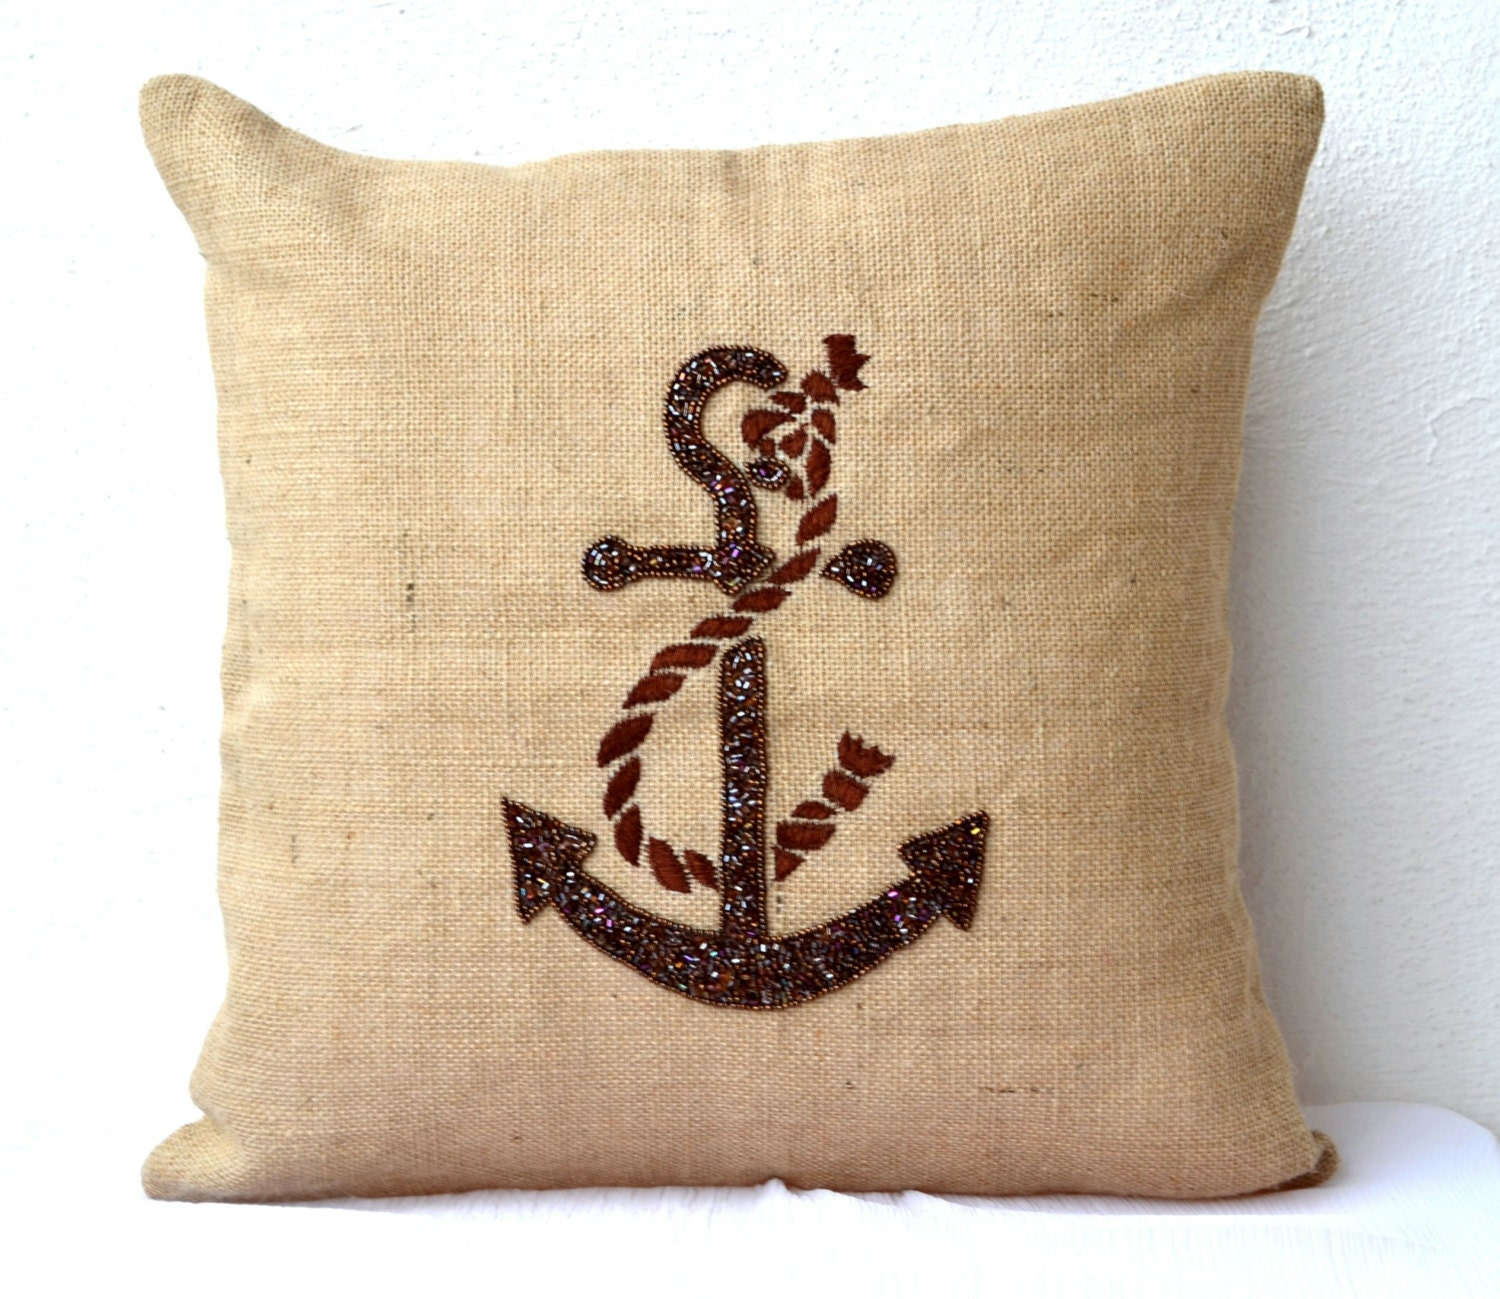 Anchor throw pillows Nautical pillow covers Beach by AmoreBeaute